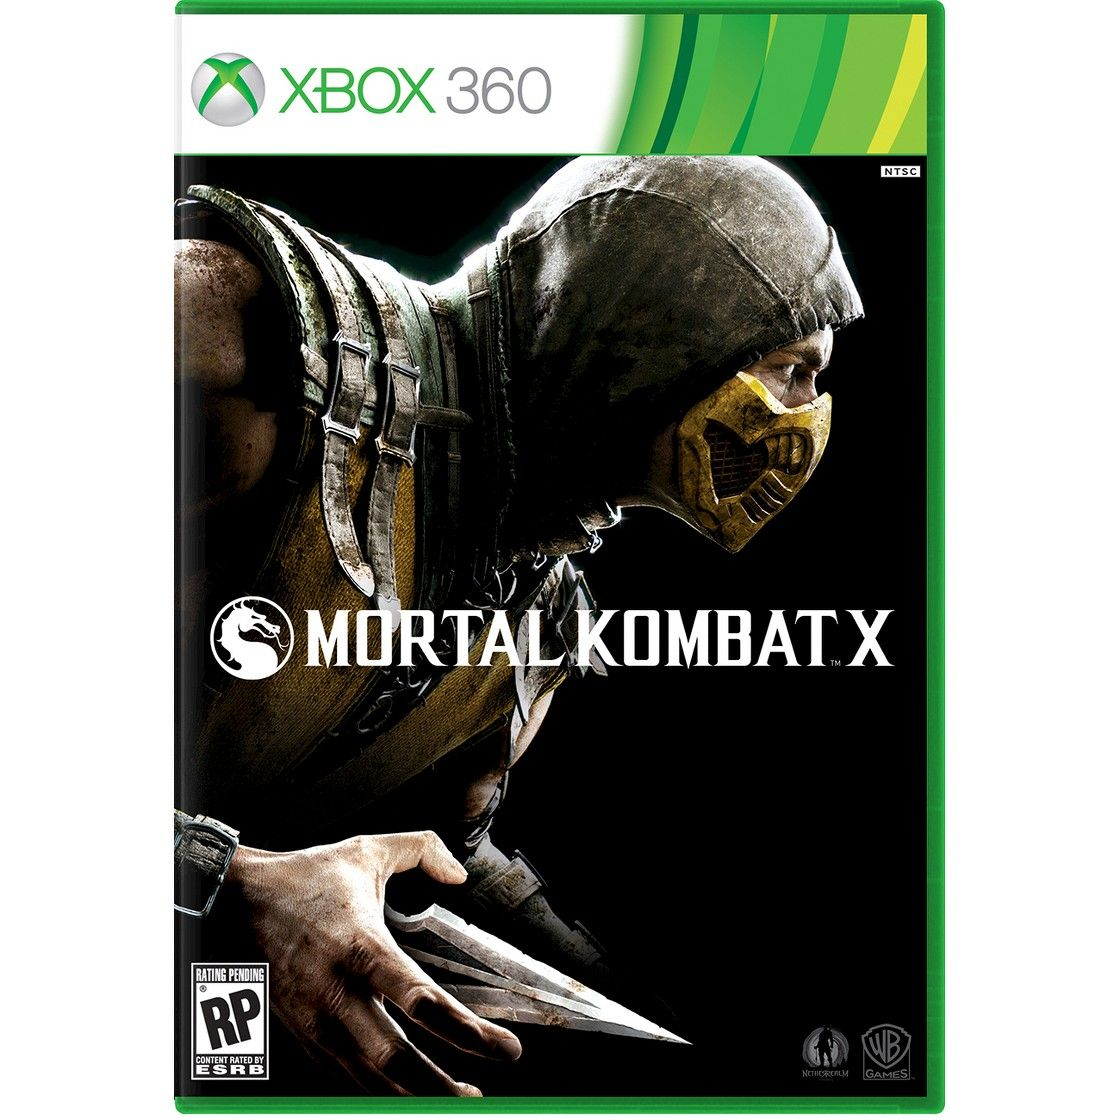 Mortal Kombat X Xbox 360 Mortal Kombat X Mortal Kombat Games